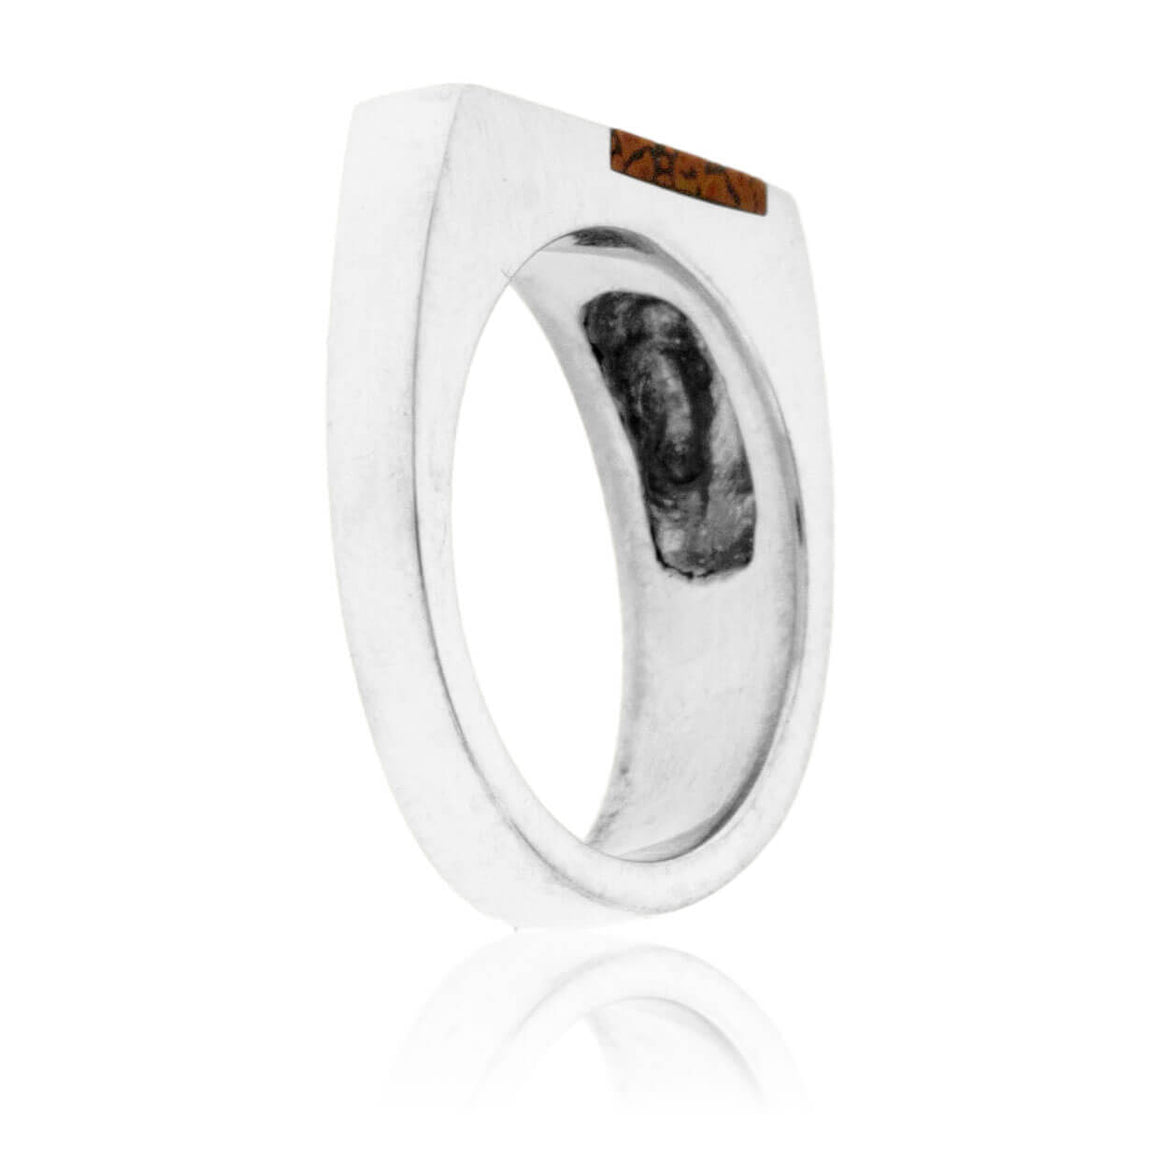 Asymmetric Style Simple Inlay Ring in Sterling Silver